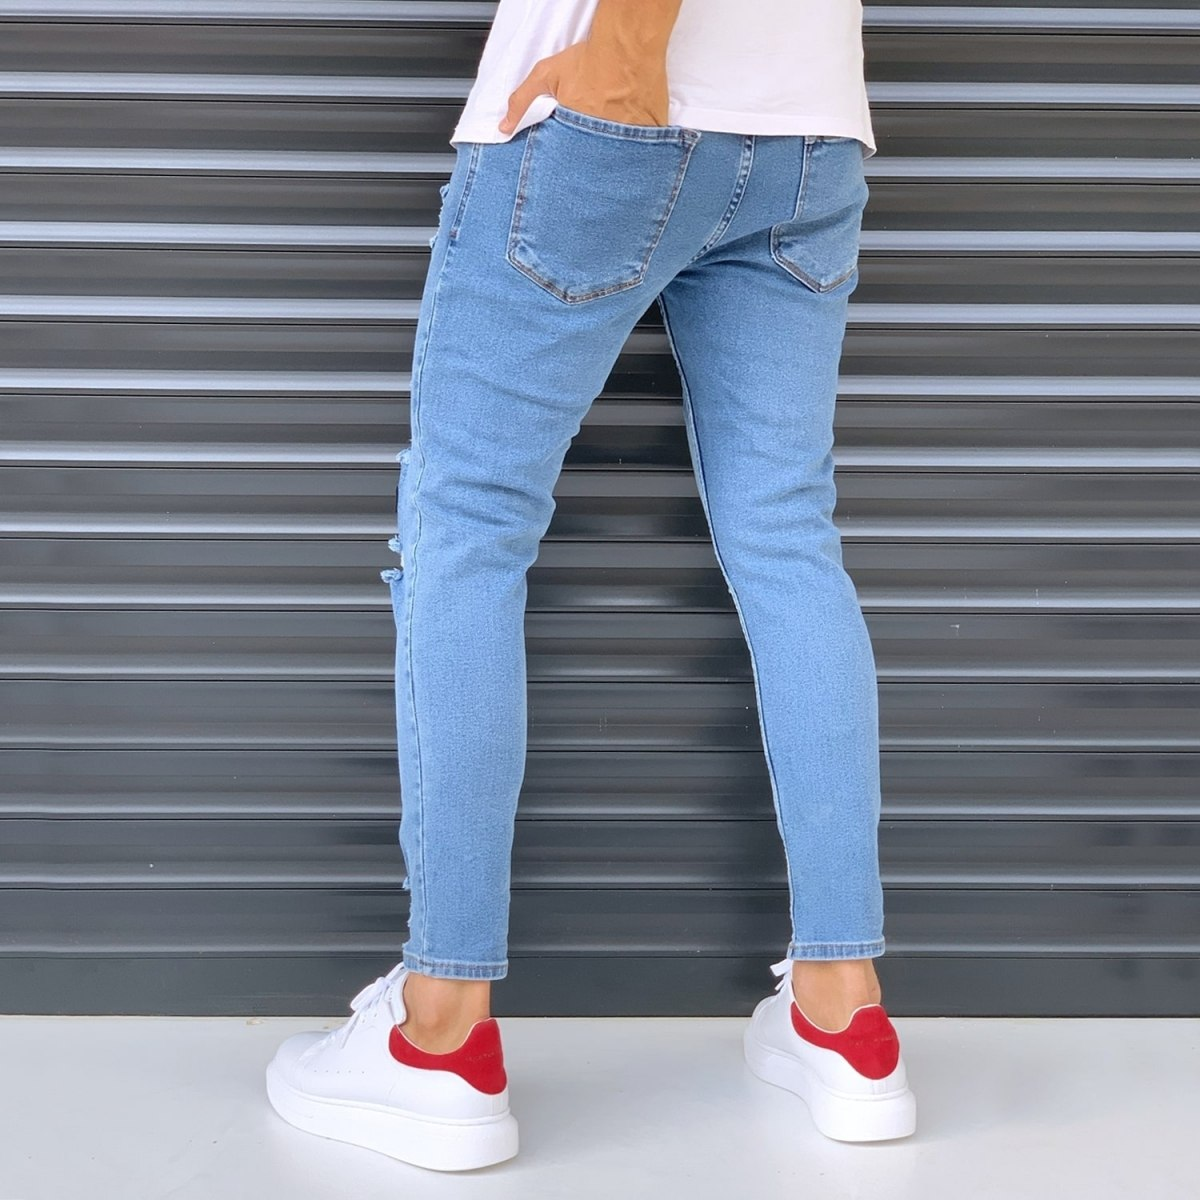 Men's Jeans With Heavy Rips And Patchworks Denim Blue Mv Premium Brand - 4